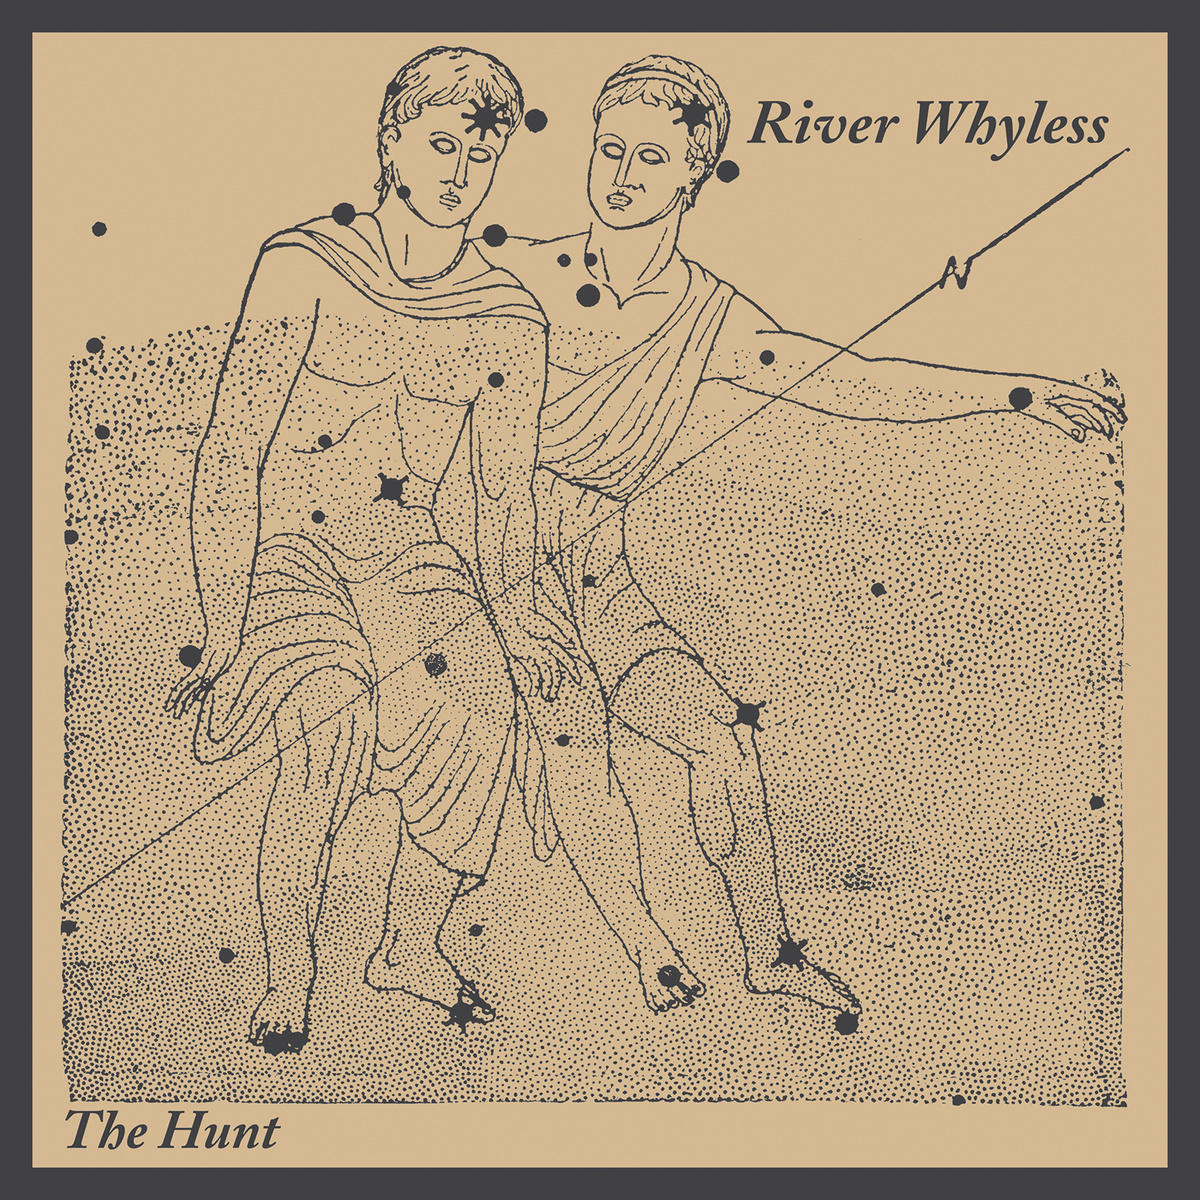 River Whyless, 'The Hunt'